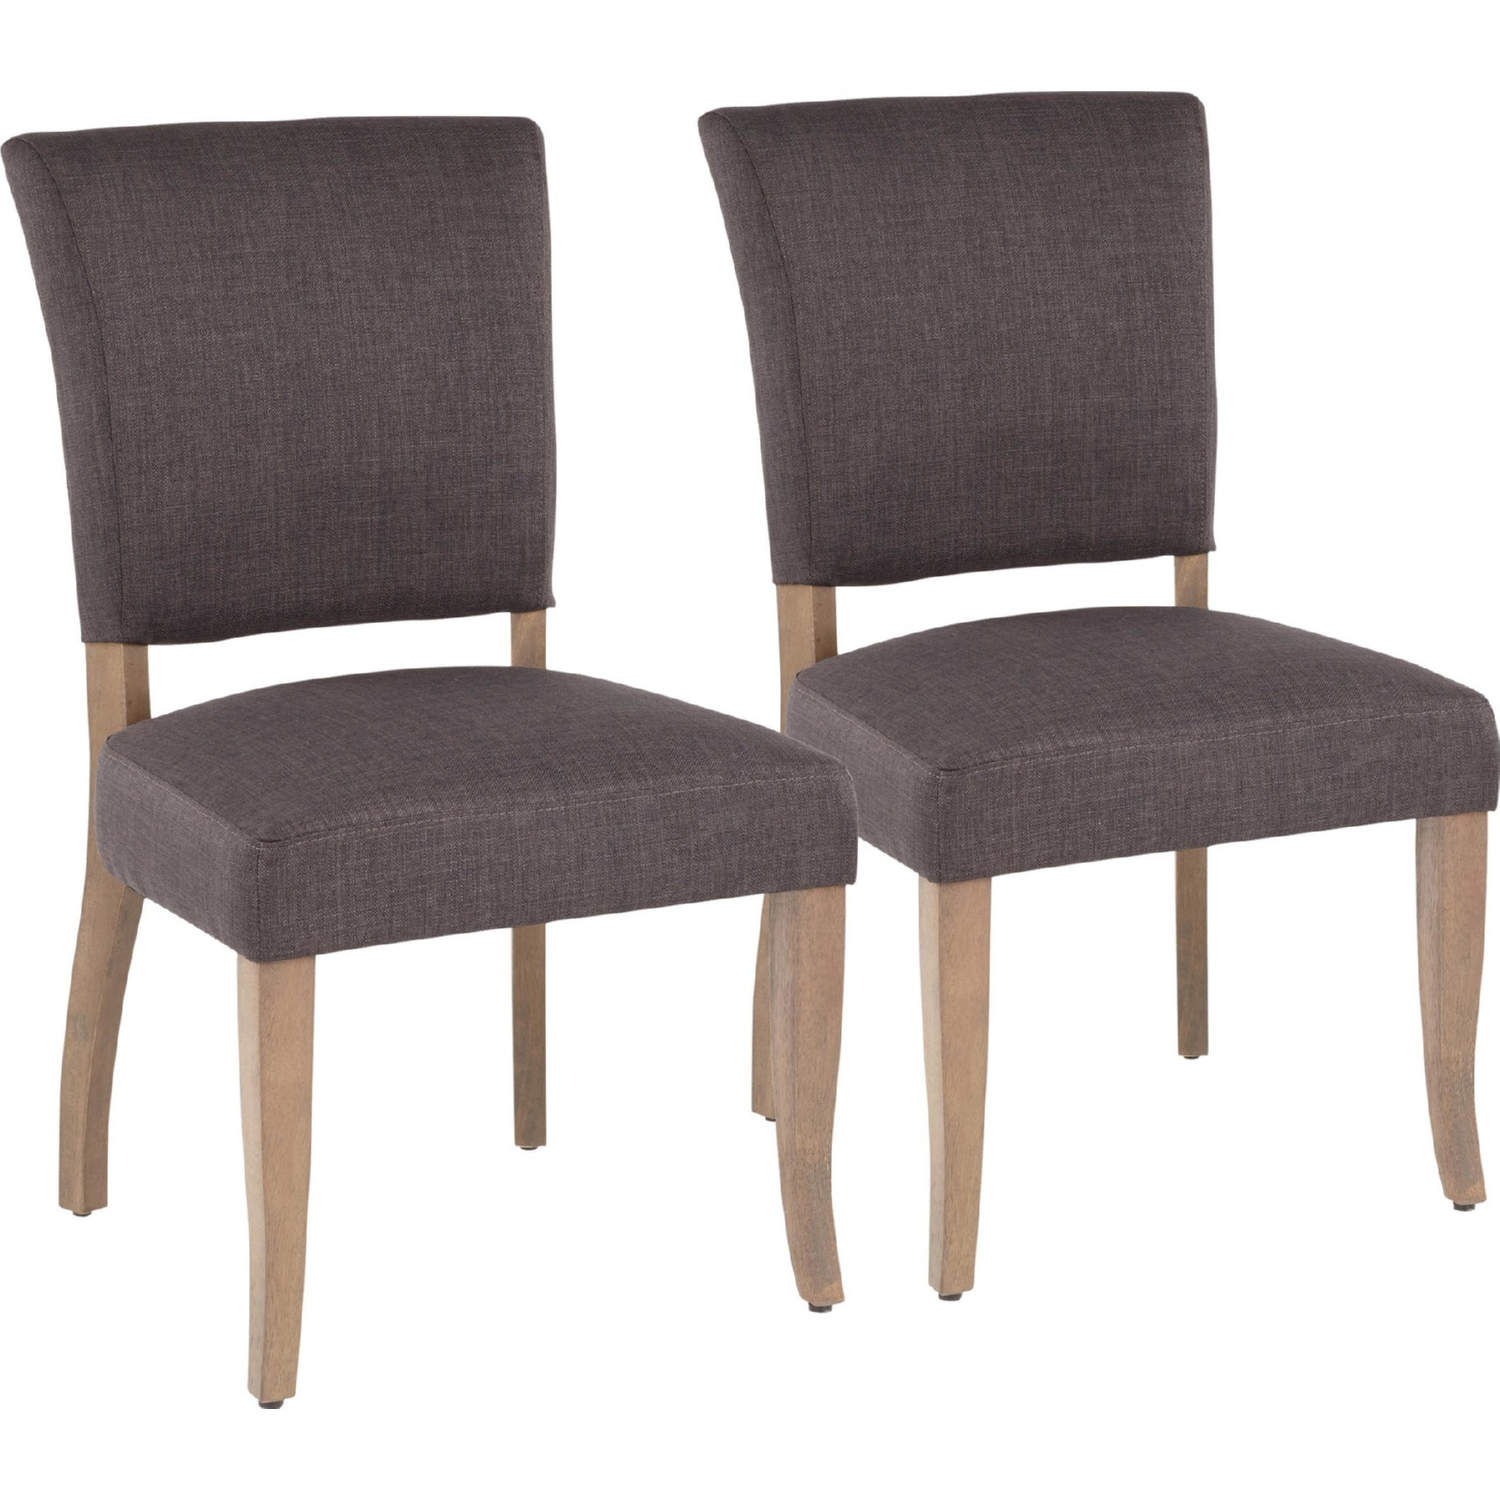 Phenomenal Rita Dining Chair In Grey Fabric On Ash Brown Wood Legs Set Of 2 By Lumisource Ncnpc Chair Design For Home Ncnpcorg